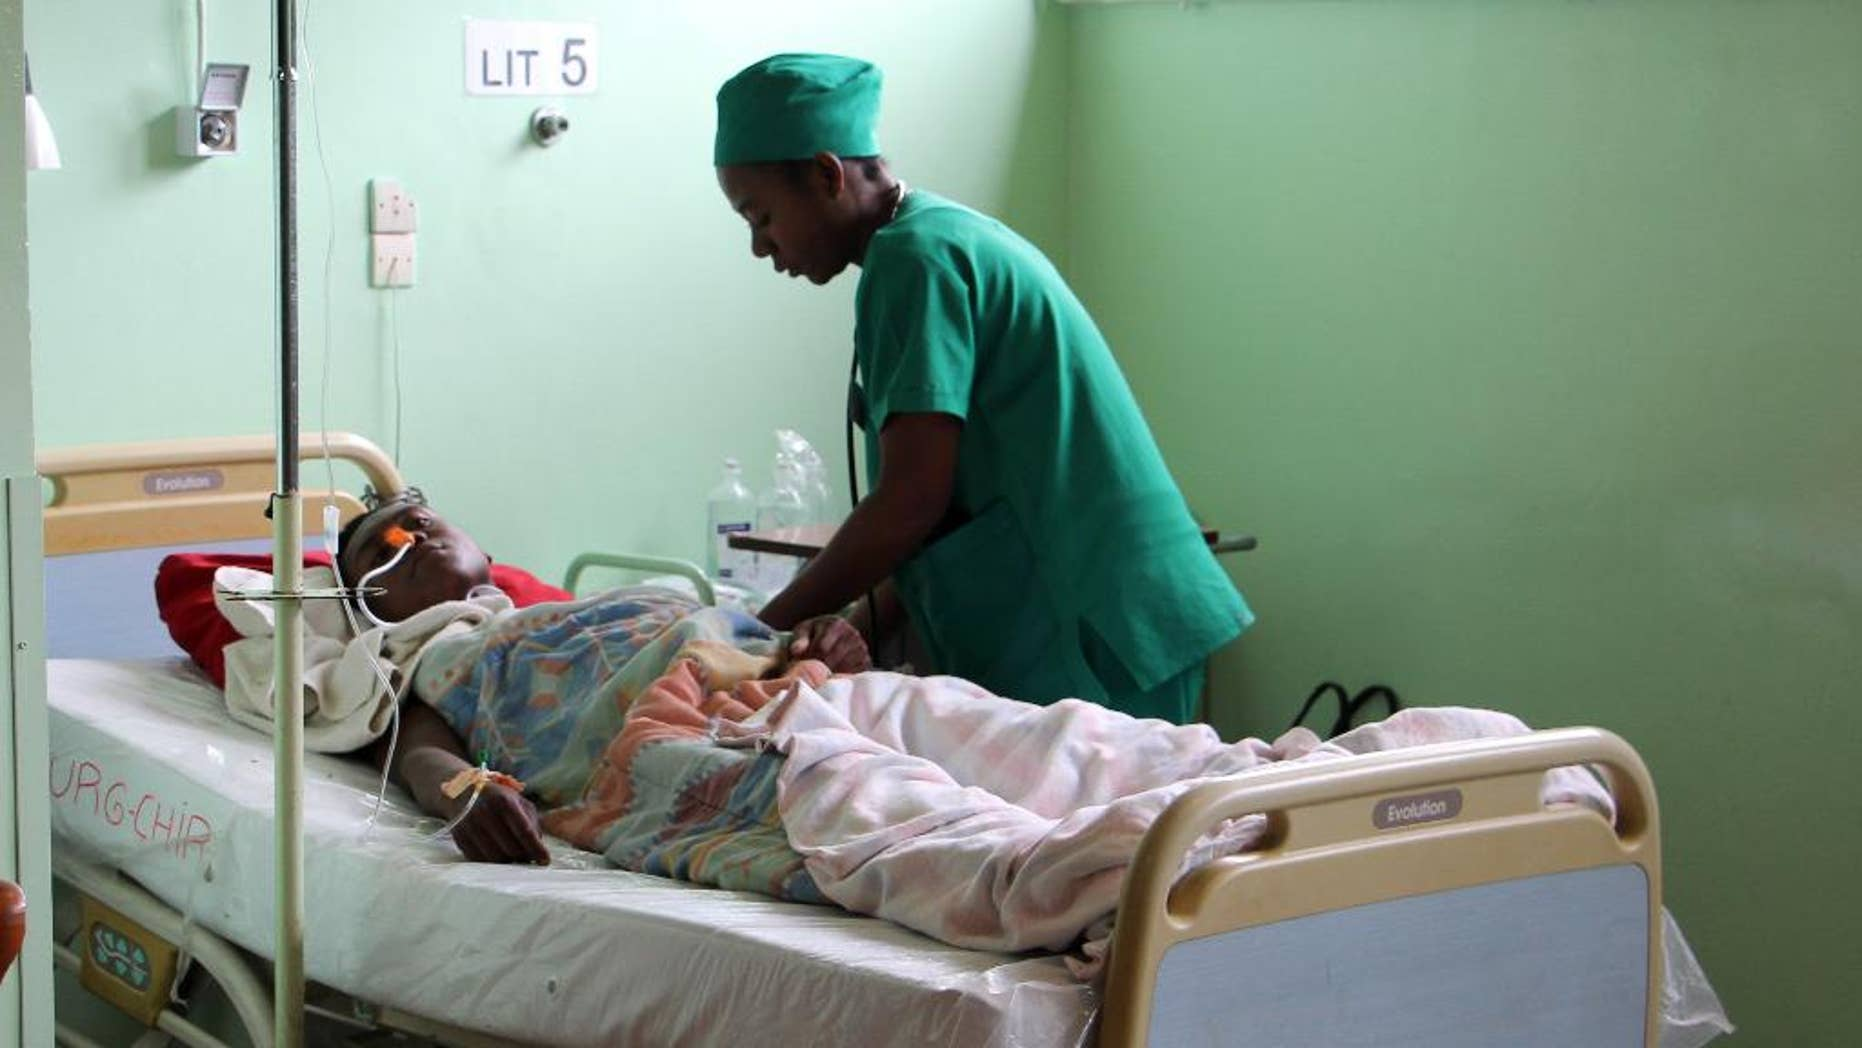 A person is treated, at a public hospital in Antananarivo, Madagascar, Monday, June 27, 2016, a day after an explosion at a stadium.  A grenade exploded in a stadium in Madagascar, killing two people and injuring more than 80 in what authorities describe as a terrorist attack, authorities said Monday. (AP Photo/Jeanne Richard)